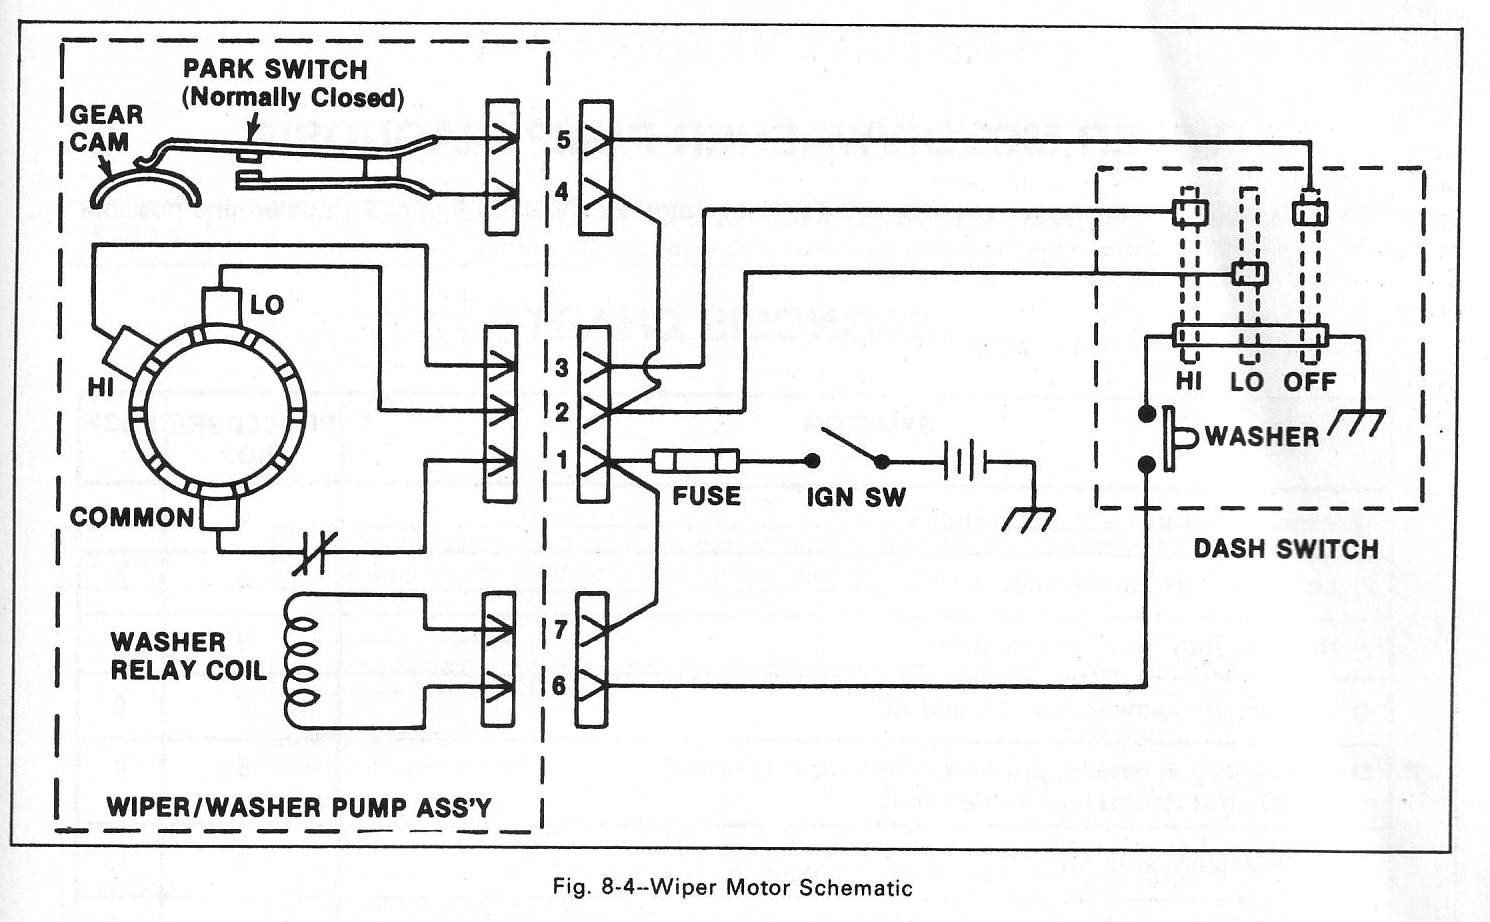 Jeep Wiring Diagrams 1976 And 1977 Cj Library Painless Diagram Hot Shot Cj7 Wiper Sample Performance